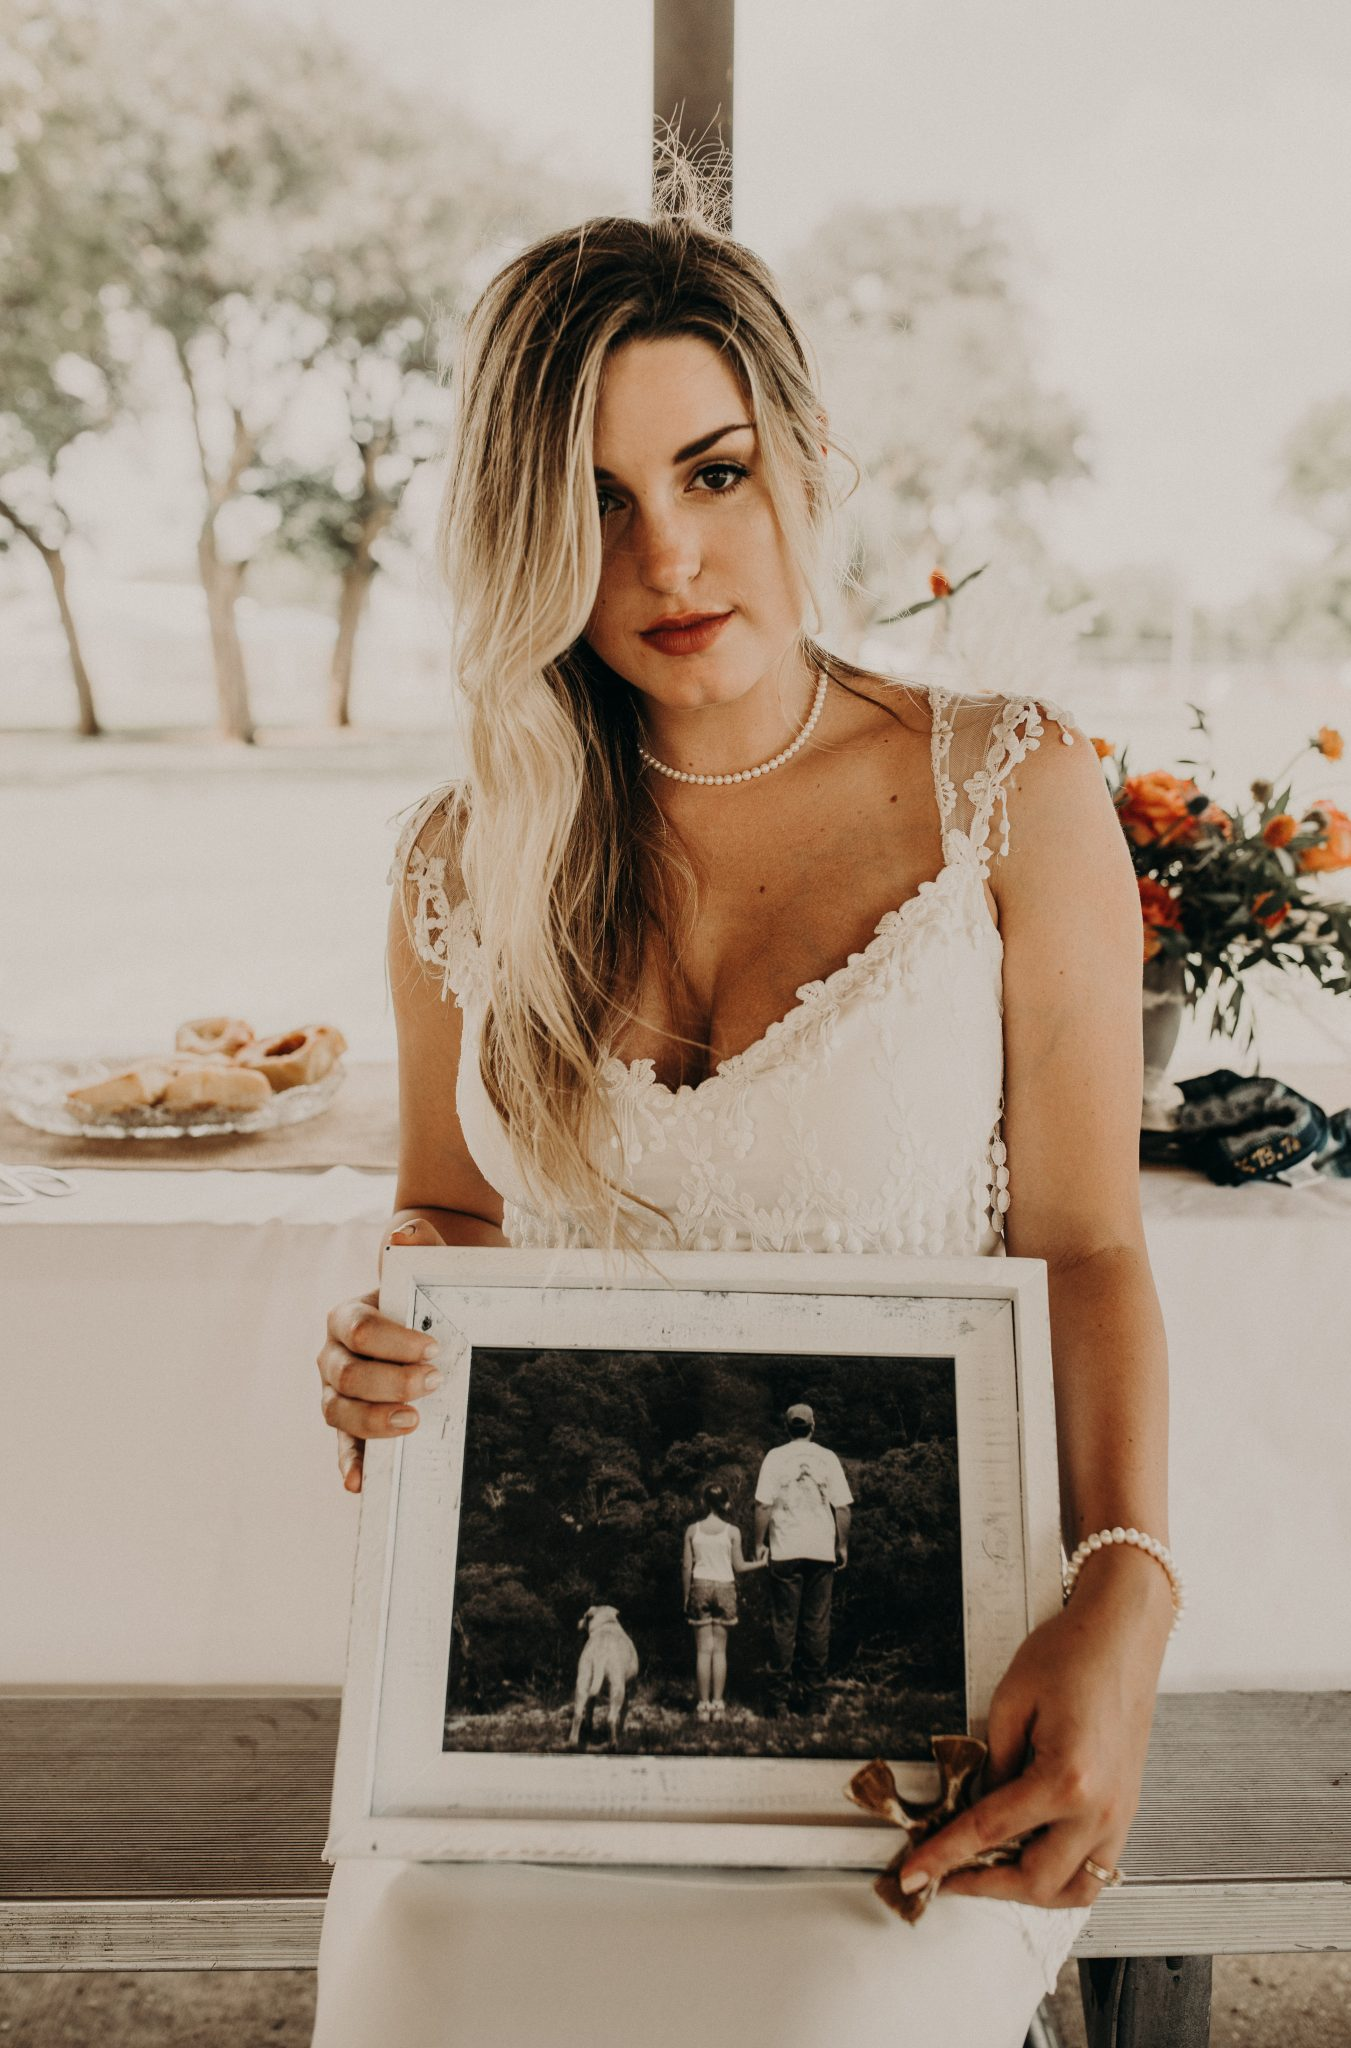 Bride sitting on a wooden bench and holding a photograph in a white wooden frame of a dog and a small girl holding an adult male's hand. behind the bride is a table with a plate of donuts and flowers on it and the table is covered in a white tablecloth. Photograph by Austin, Texas wedding photographer Nikk Nguyen.